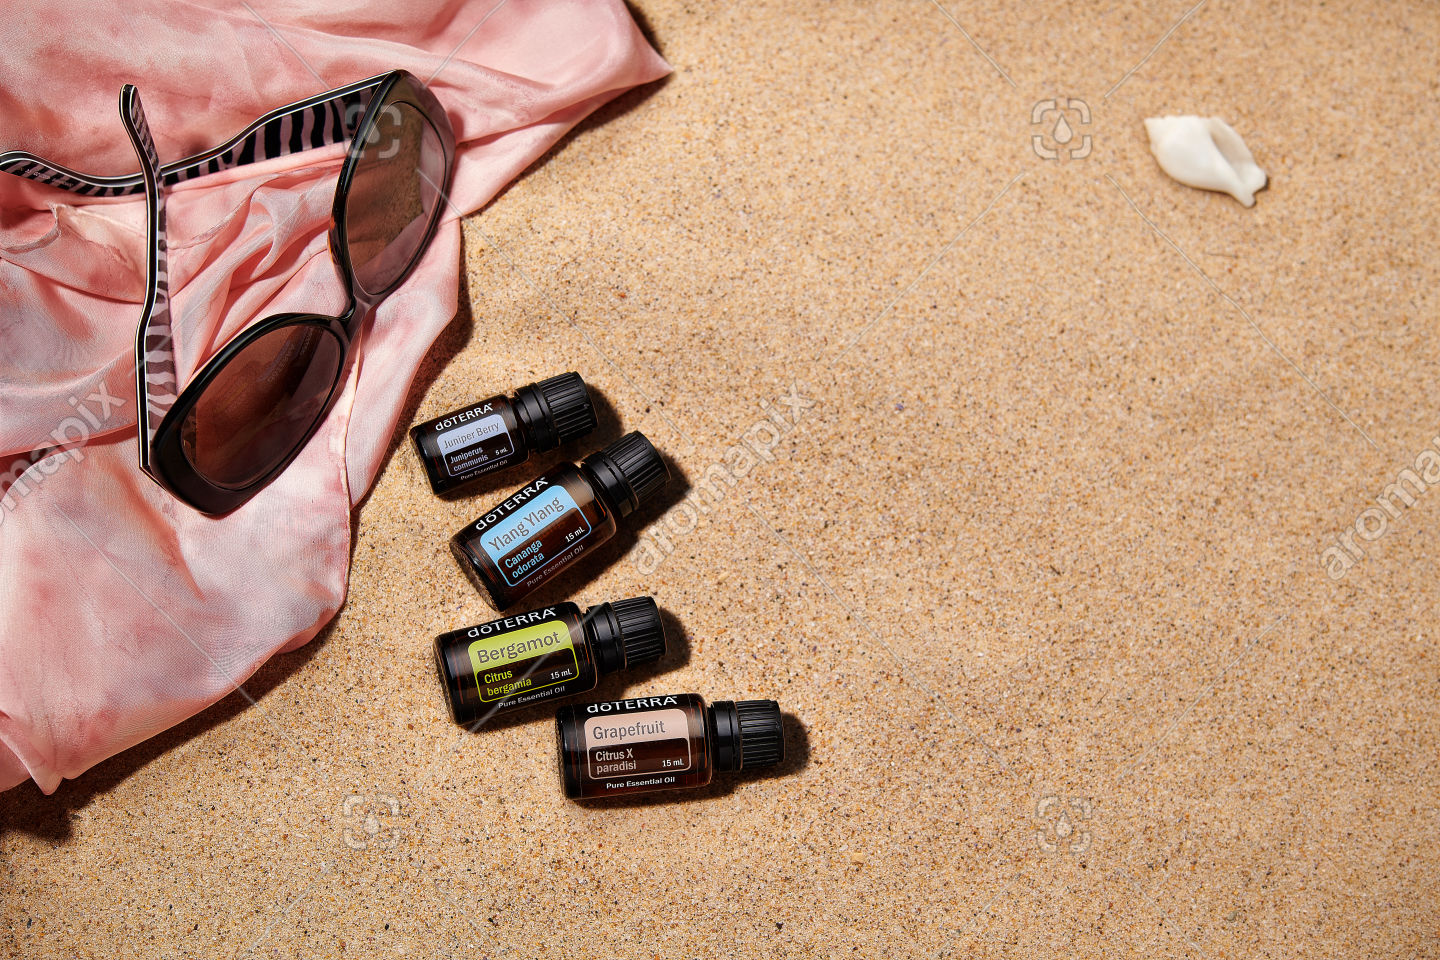 doTERRA Juniper Berry, Ylang Ylang, Bergamot and Grapefruit with accessories on sand